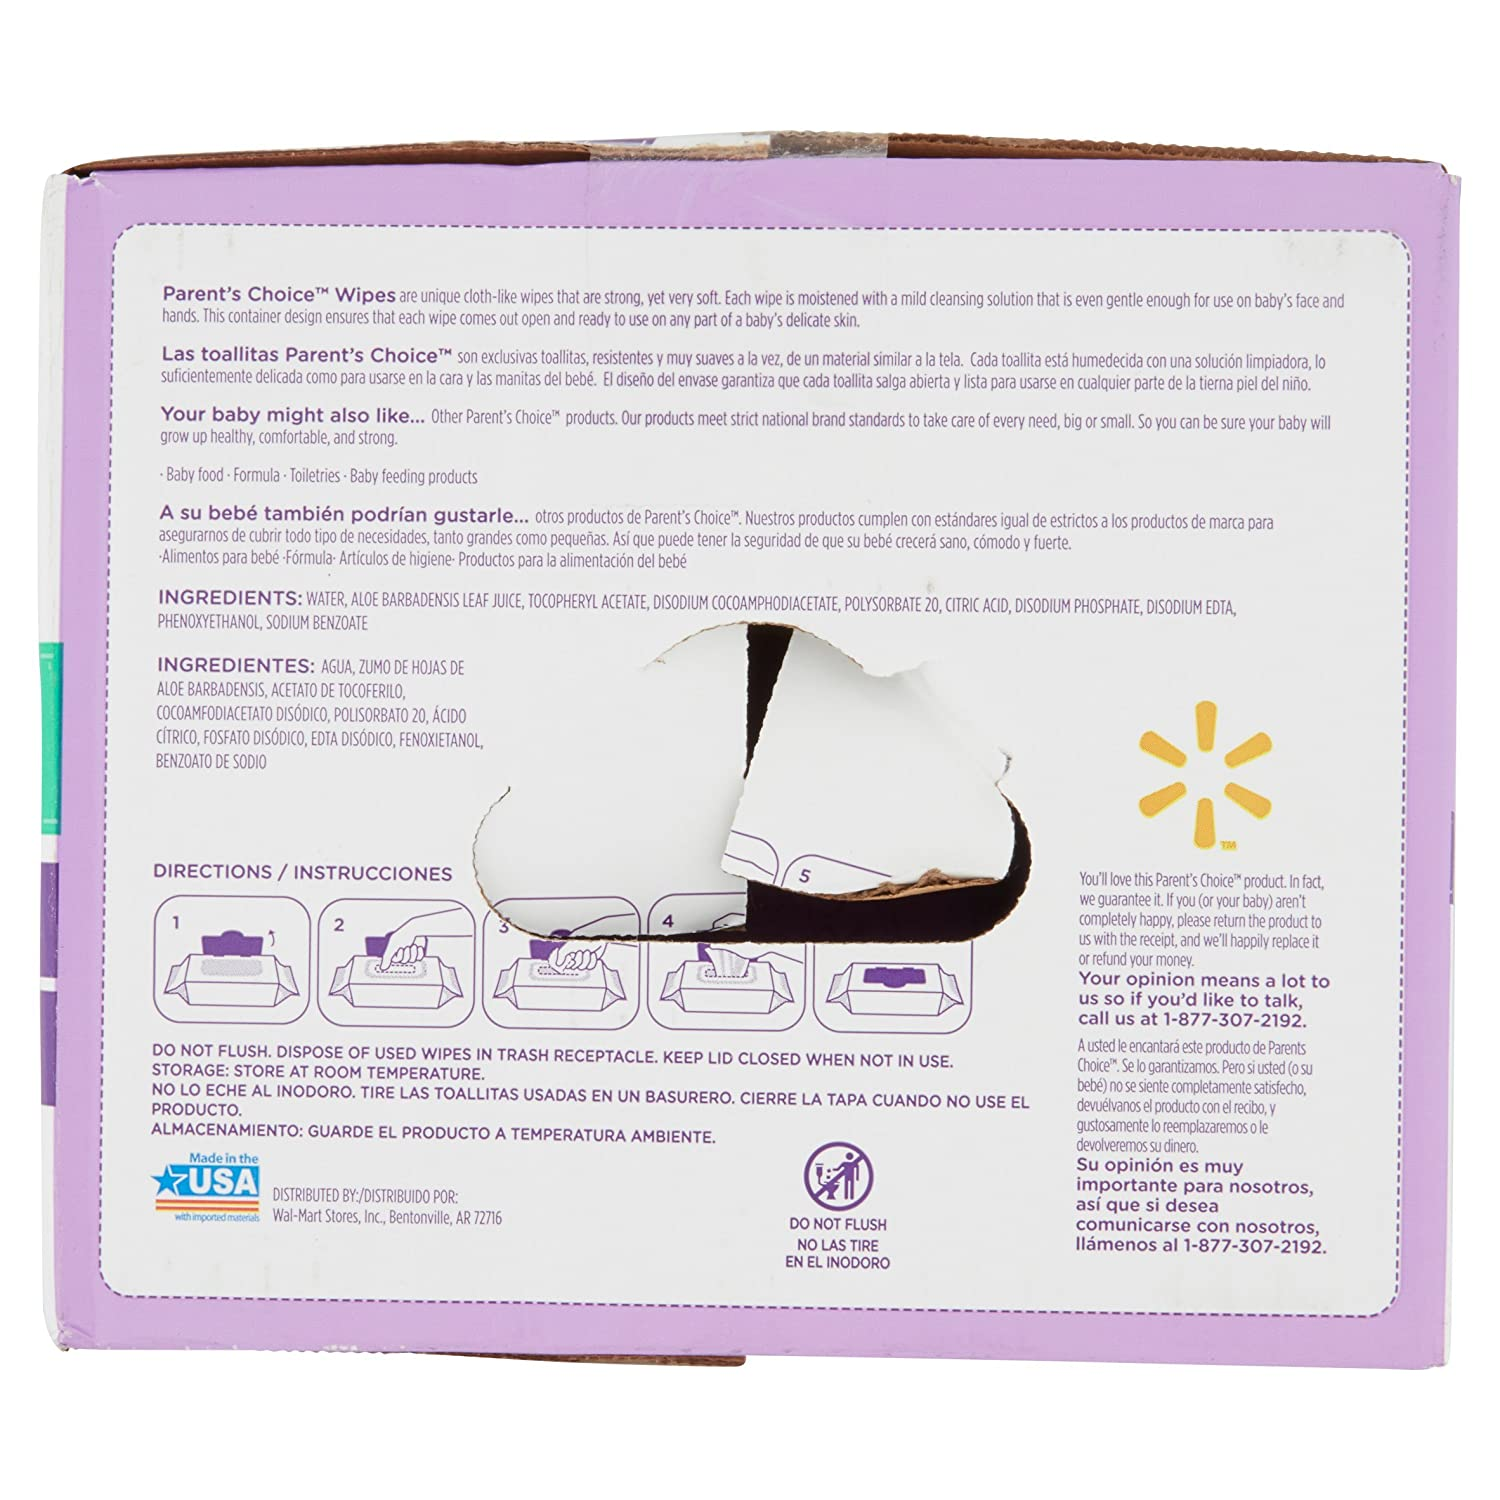 Amazon.com: PACK OF 4 - Parents Choice Fragrance Free Baby Wipes, 500 sheets: Health & Personal Care